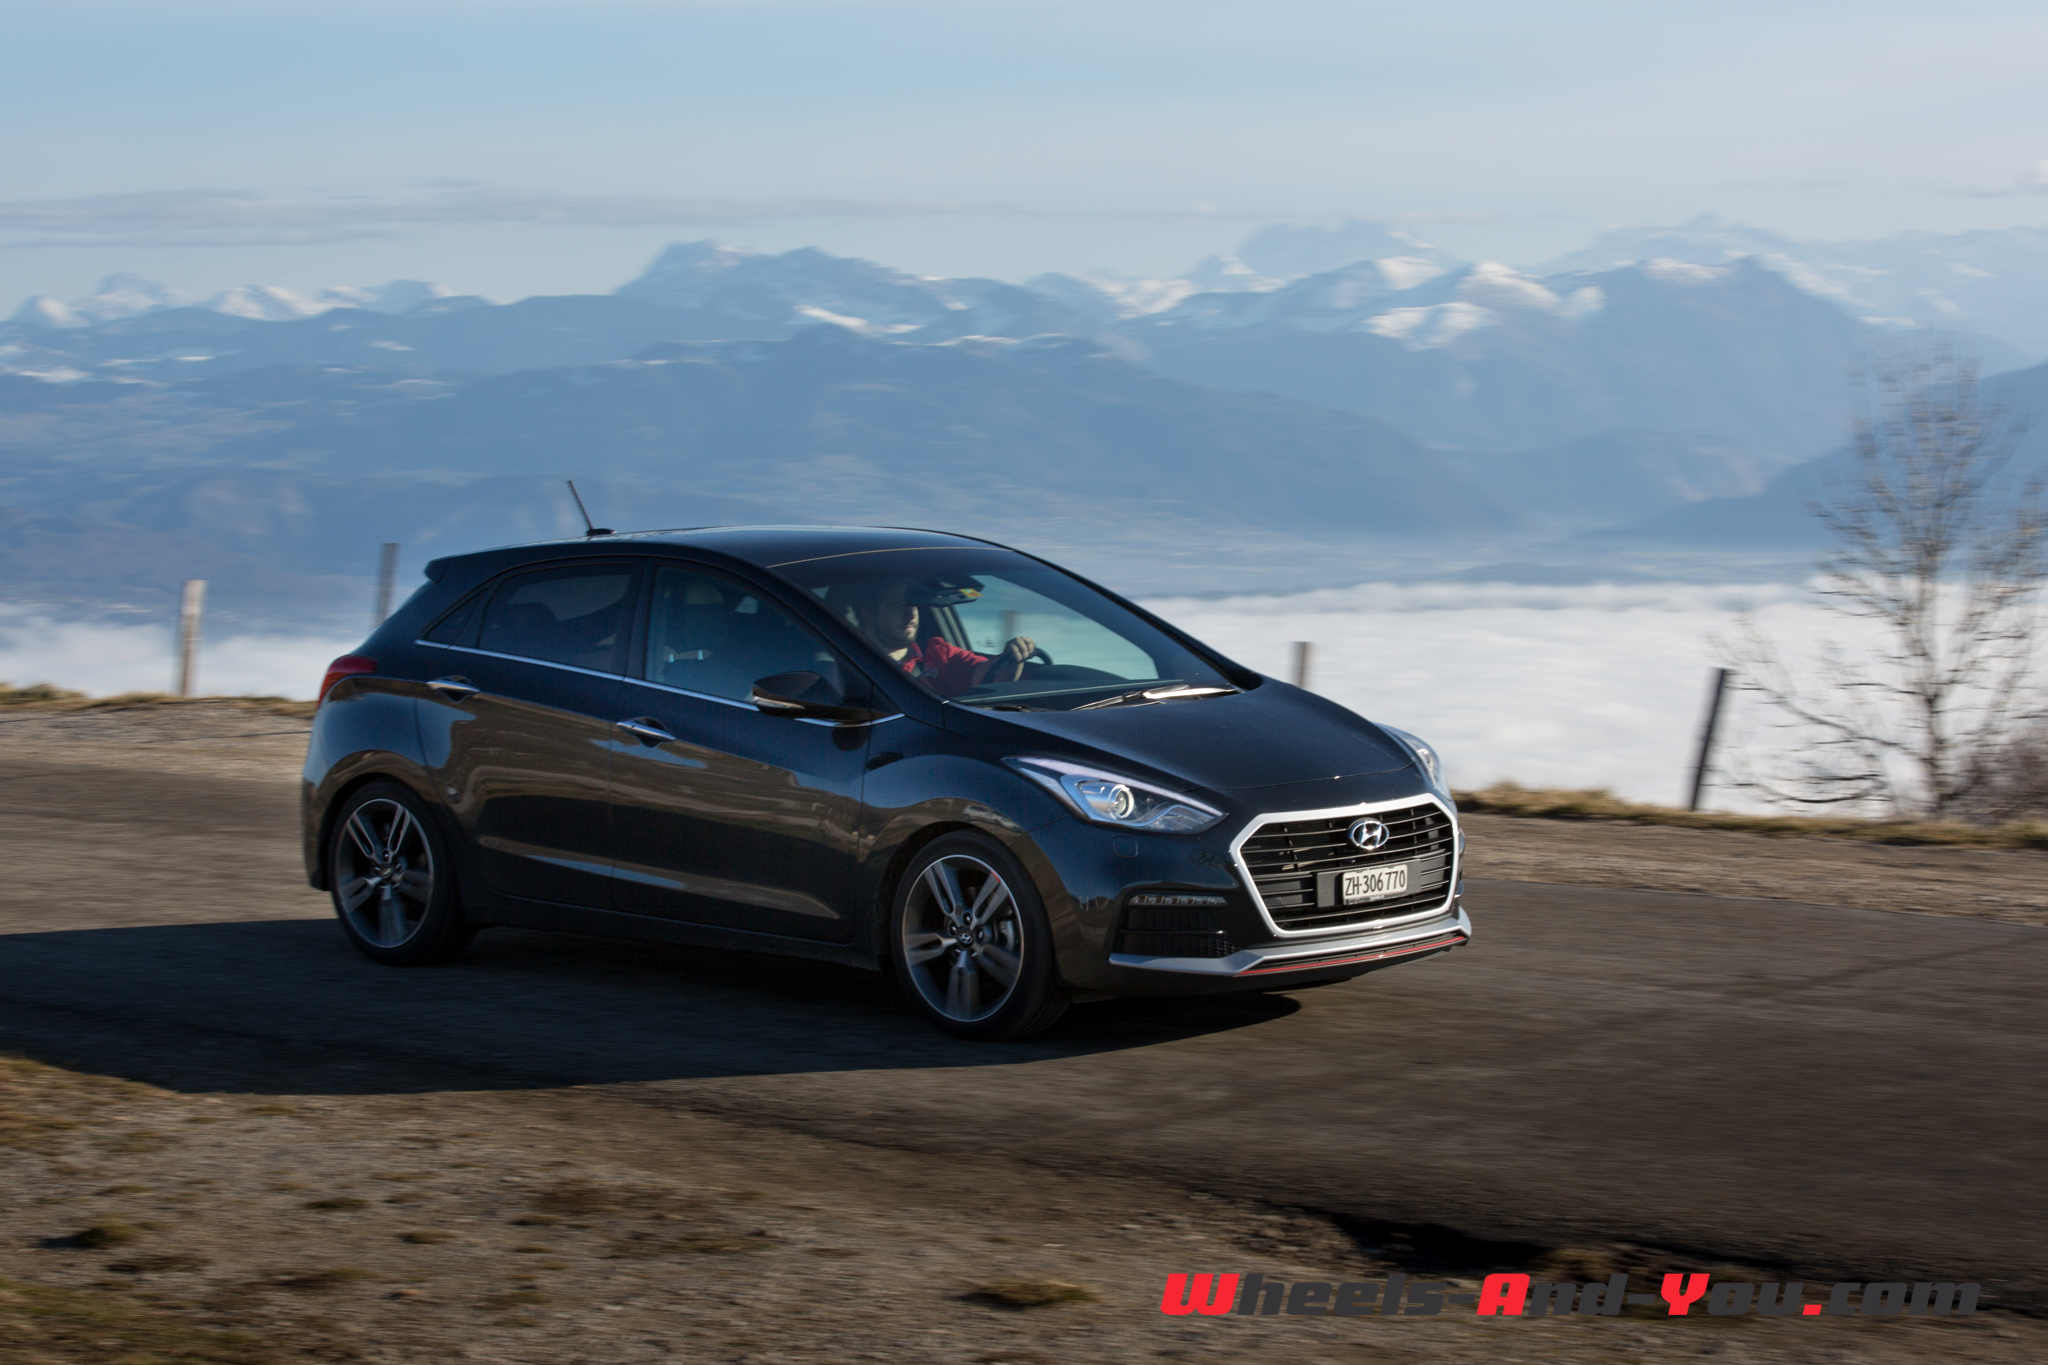 Hyundai i30turbo-15